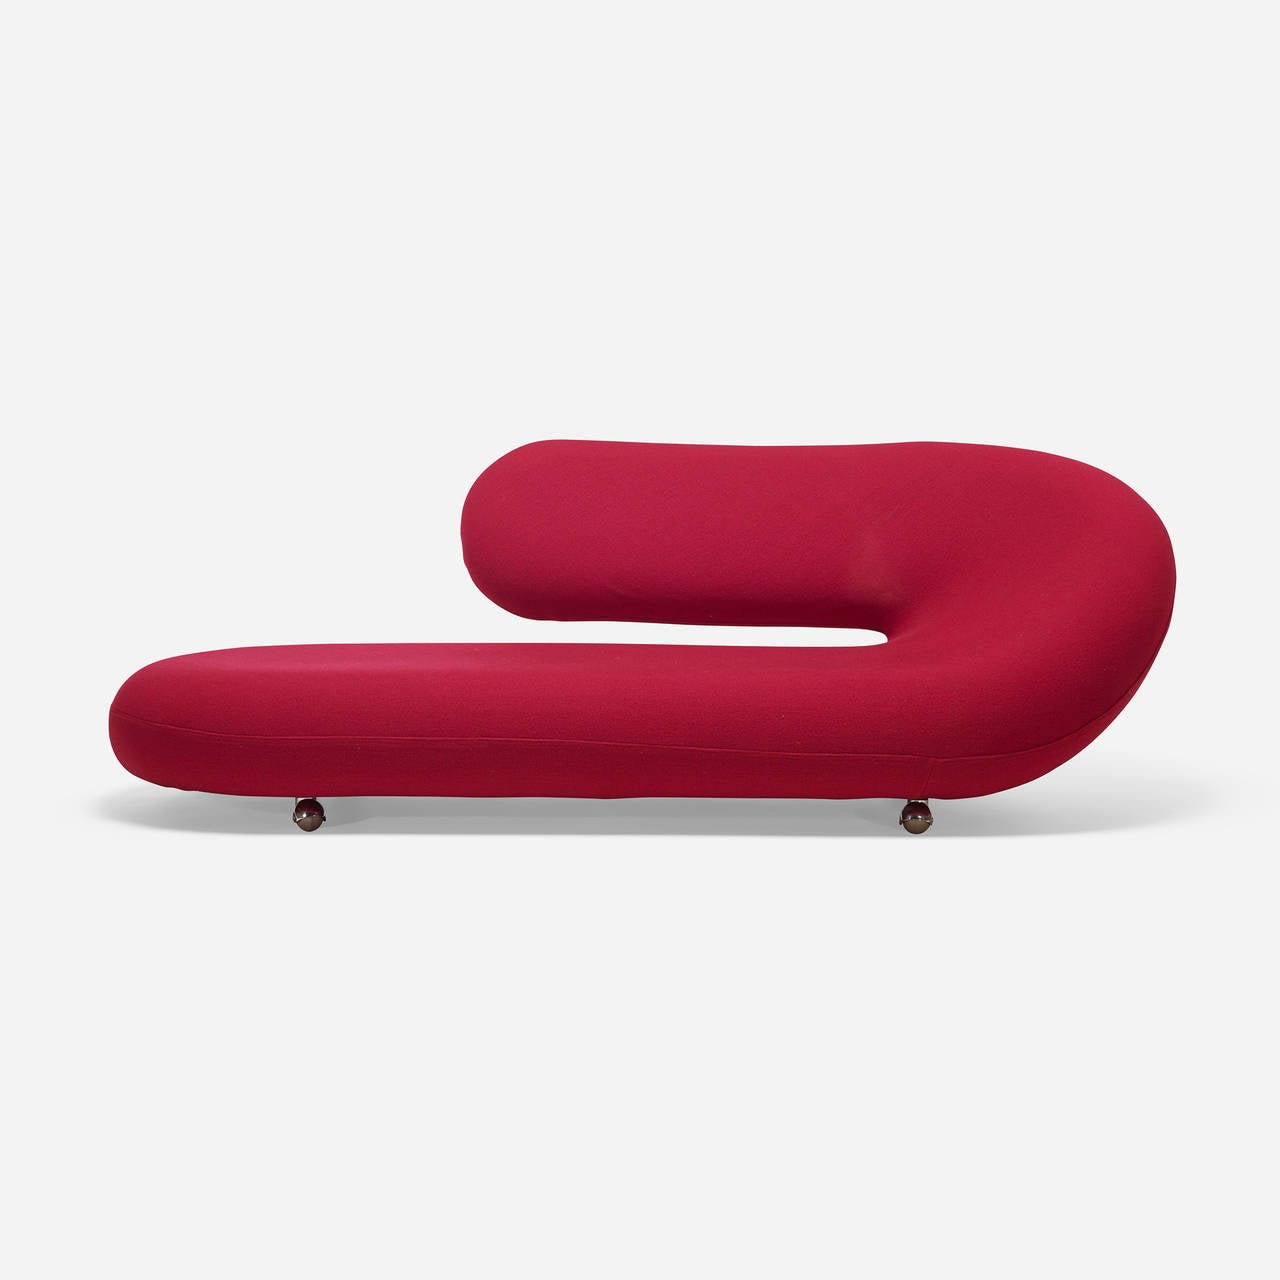 cleopatra chaise lounge by geoffrey harcourt for artifort ForArtifort Chaise Lounge